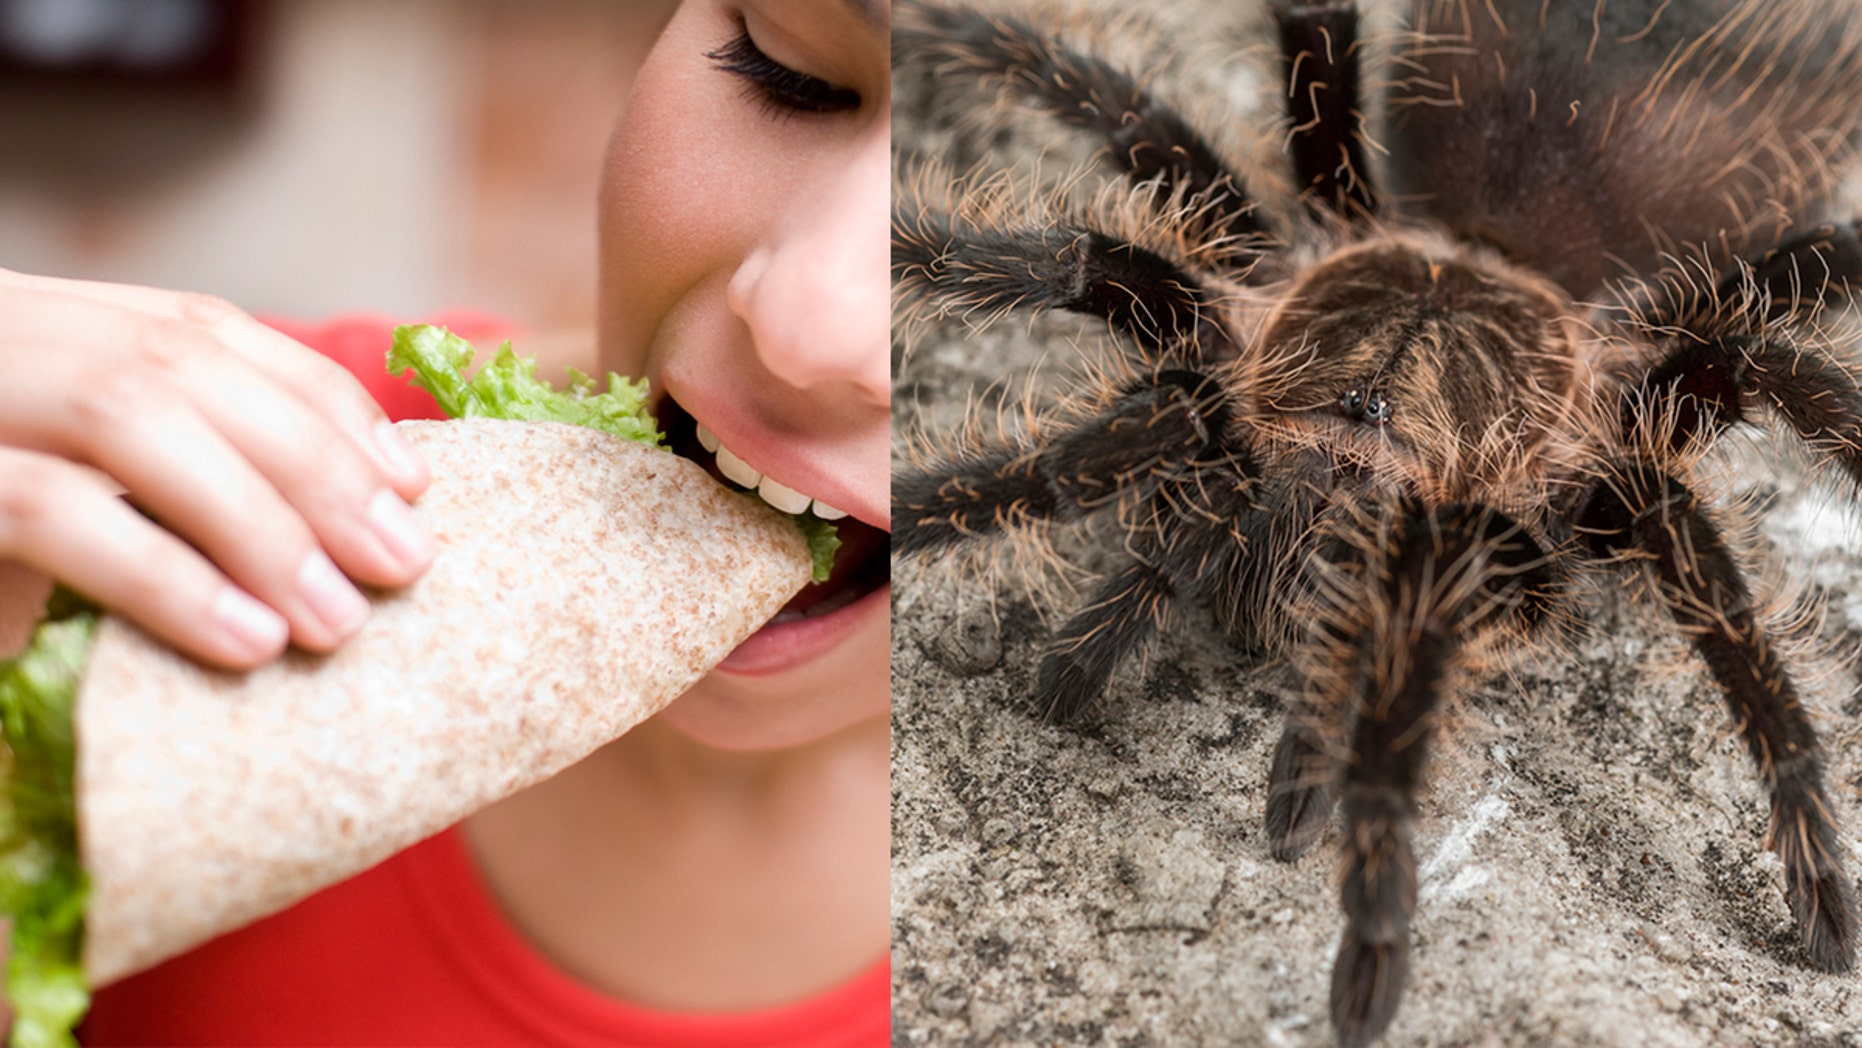 A Mexico City market restaurant recently put the arachnids on its menu.